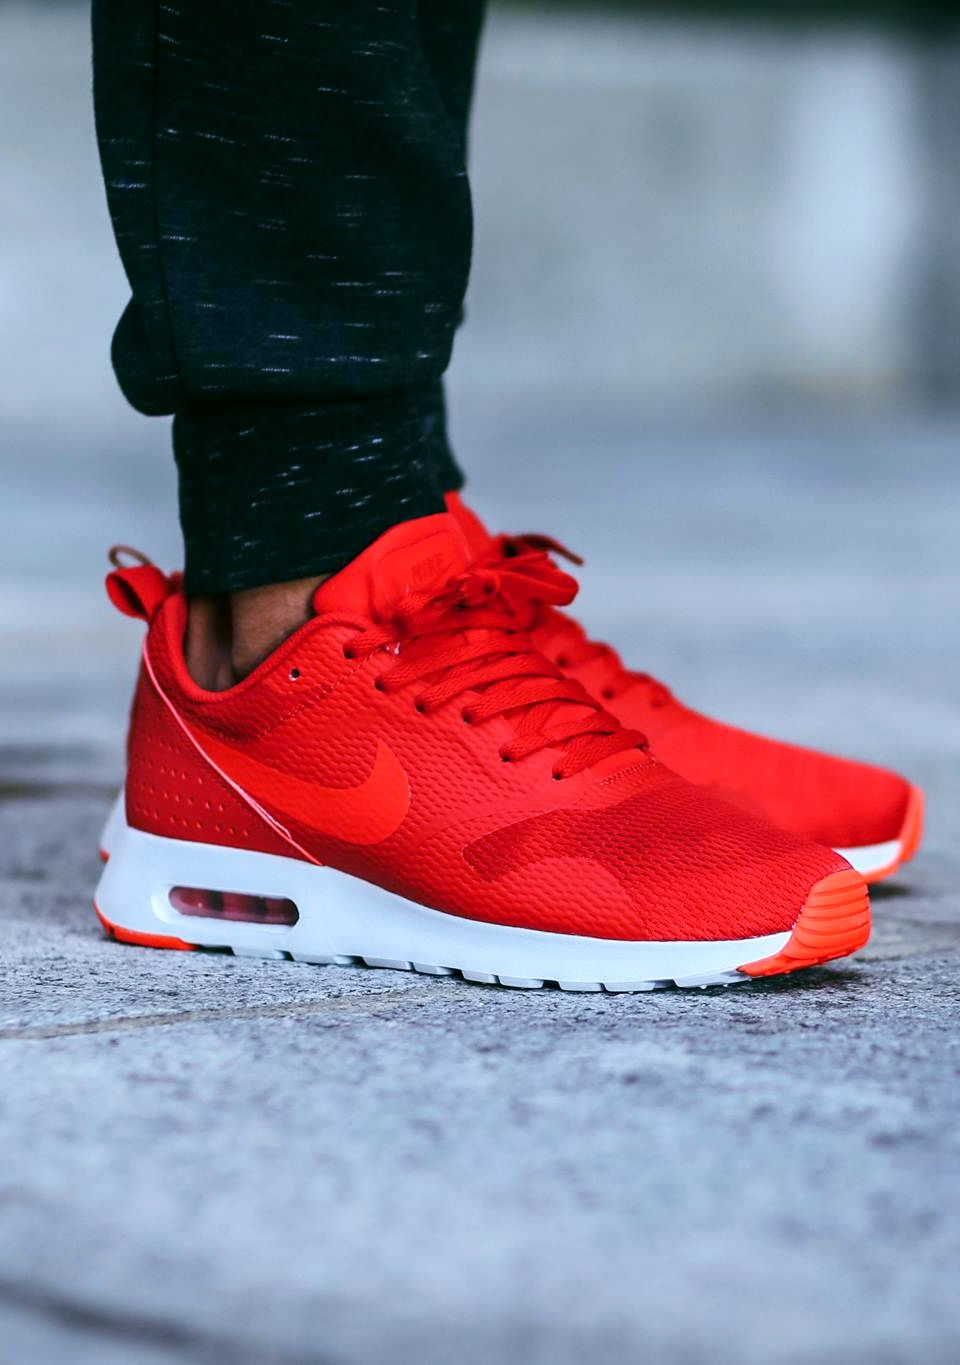 Nike Air Max Tavas  University Red  (via Kicks-daily.com)  a9323412b